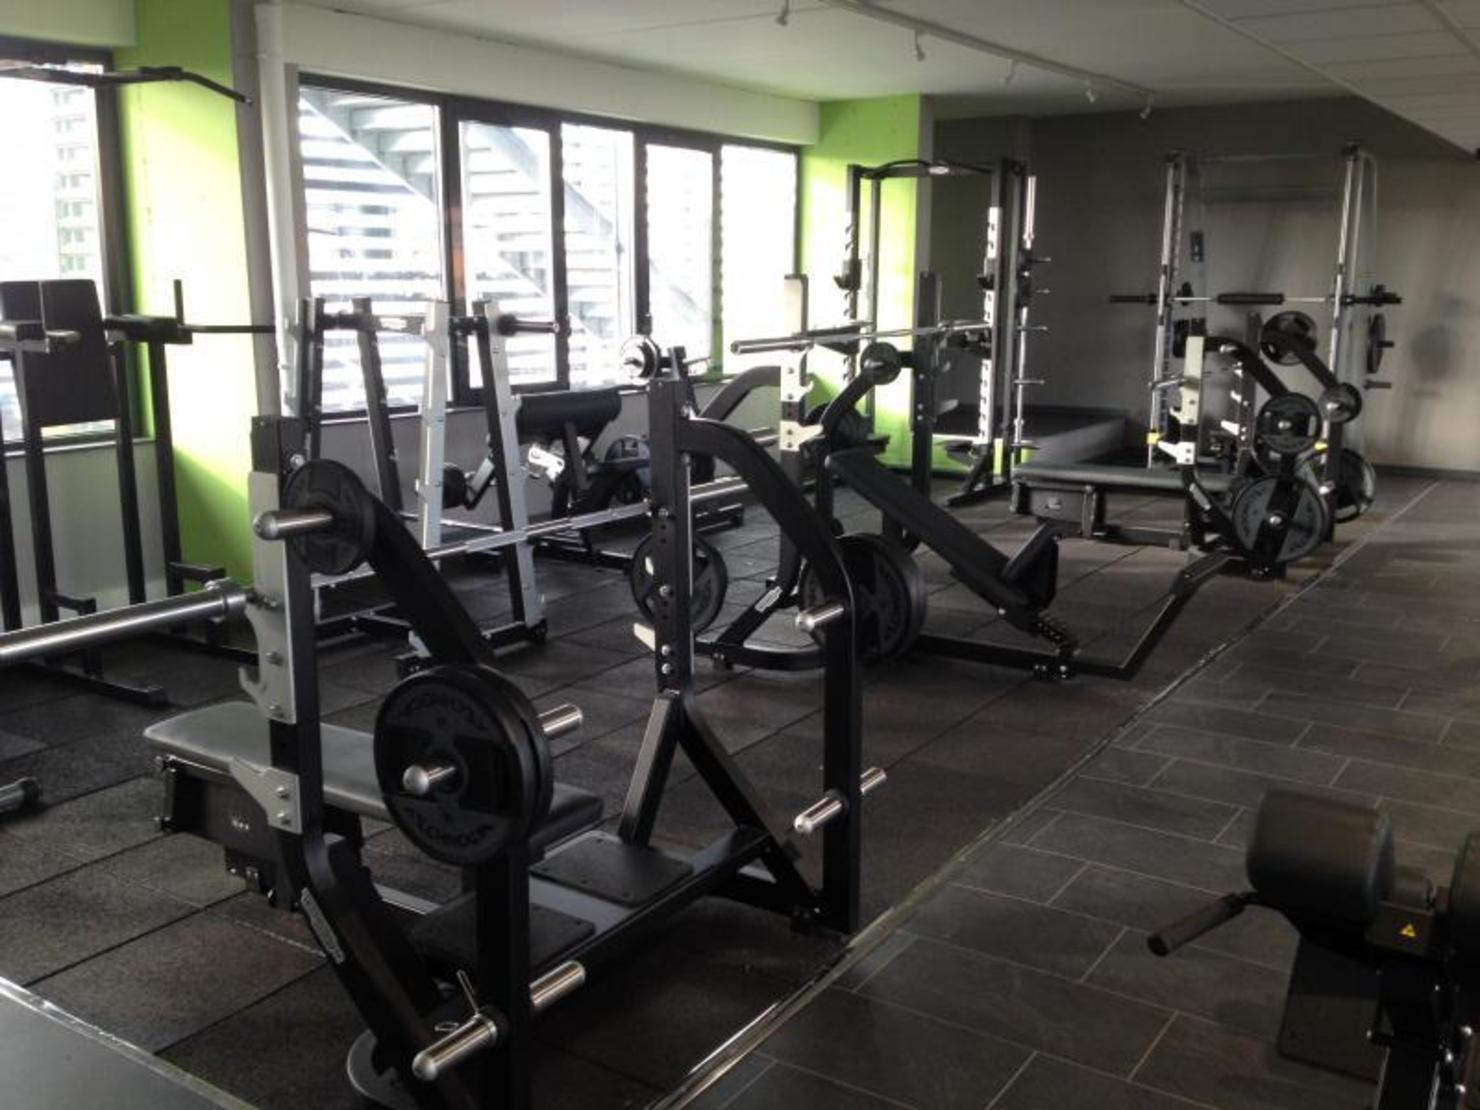 d fi gym audincourt tarifs avis horaires essai gratuit. Black Bedroom Furniture Sets. Home Design Ideas